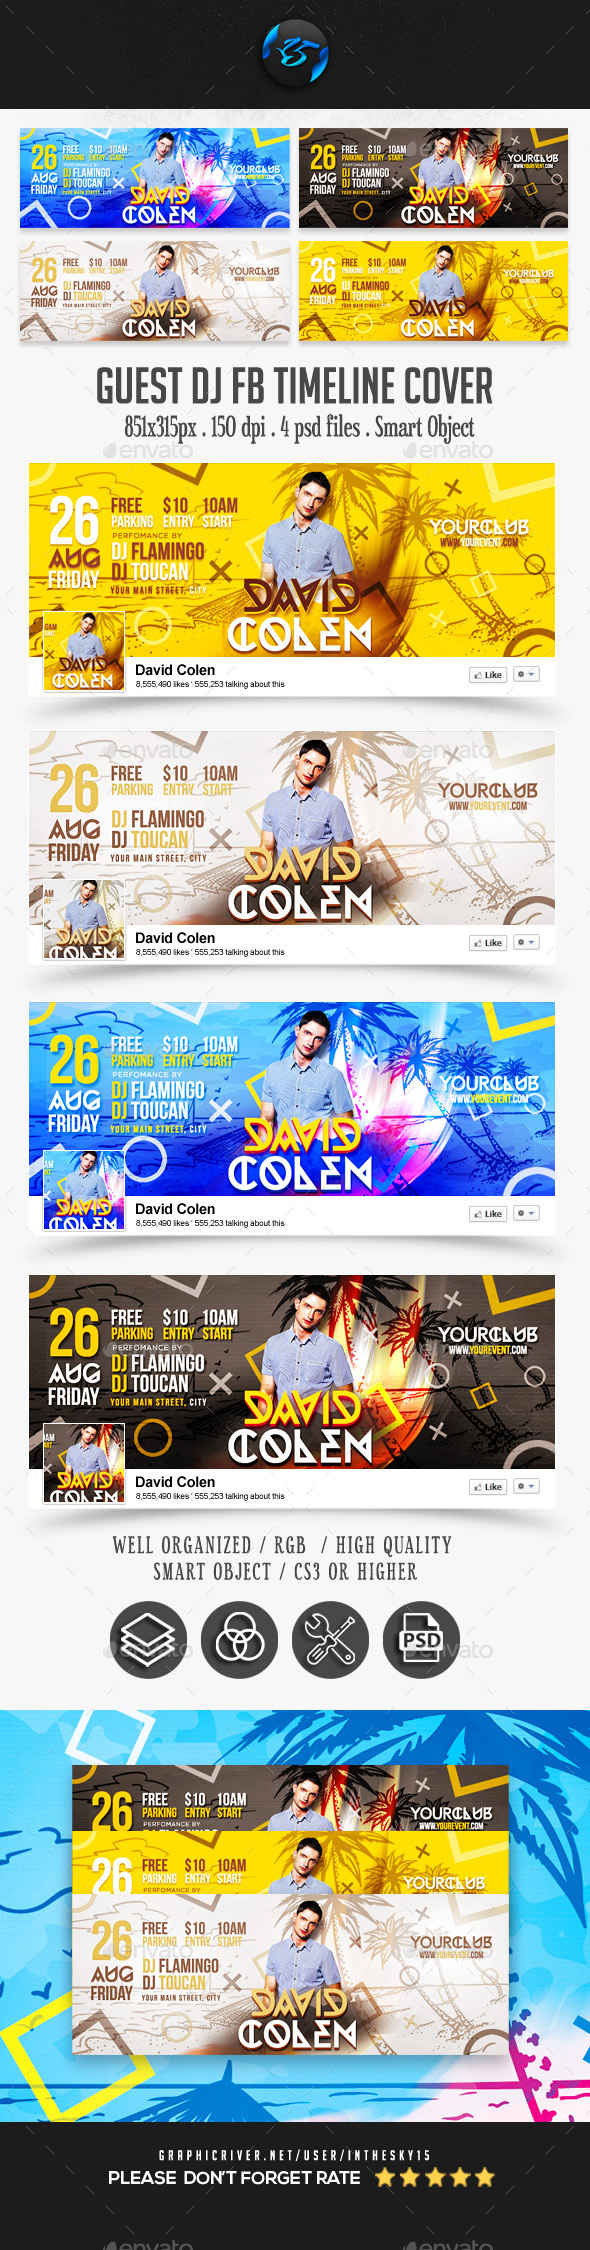 Guest DJ FB Timeline Covers - Facebook Timeline Covers Social Media